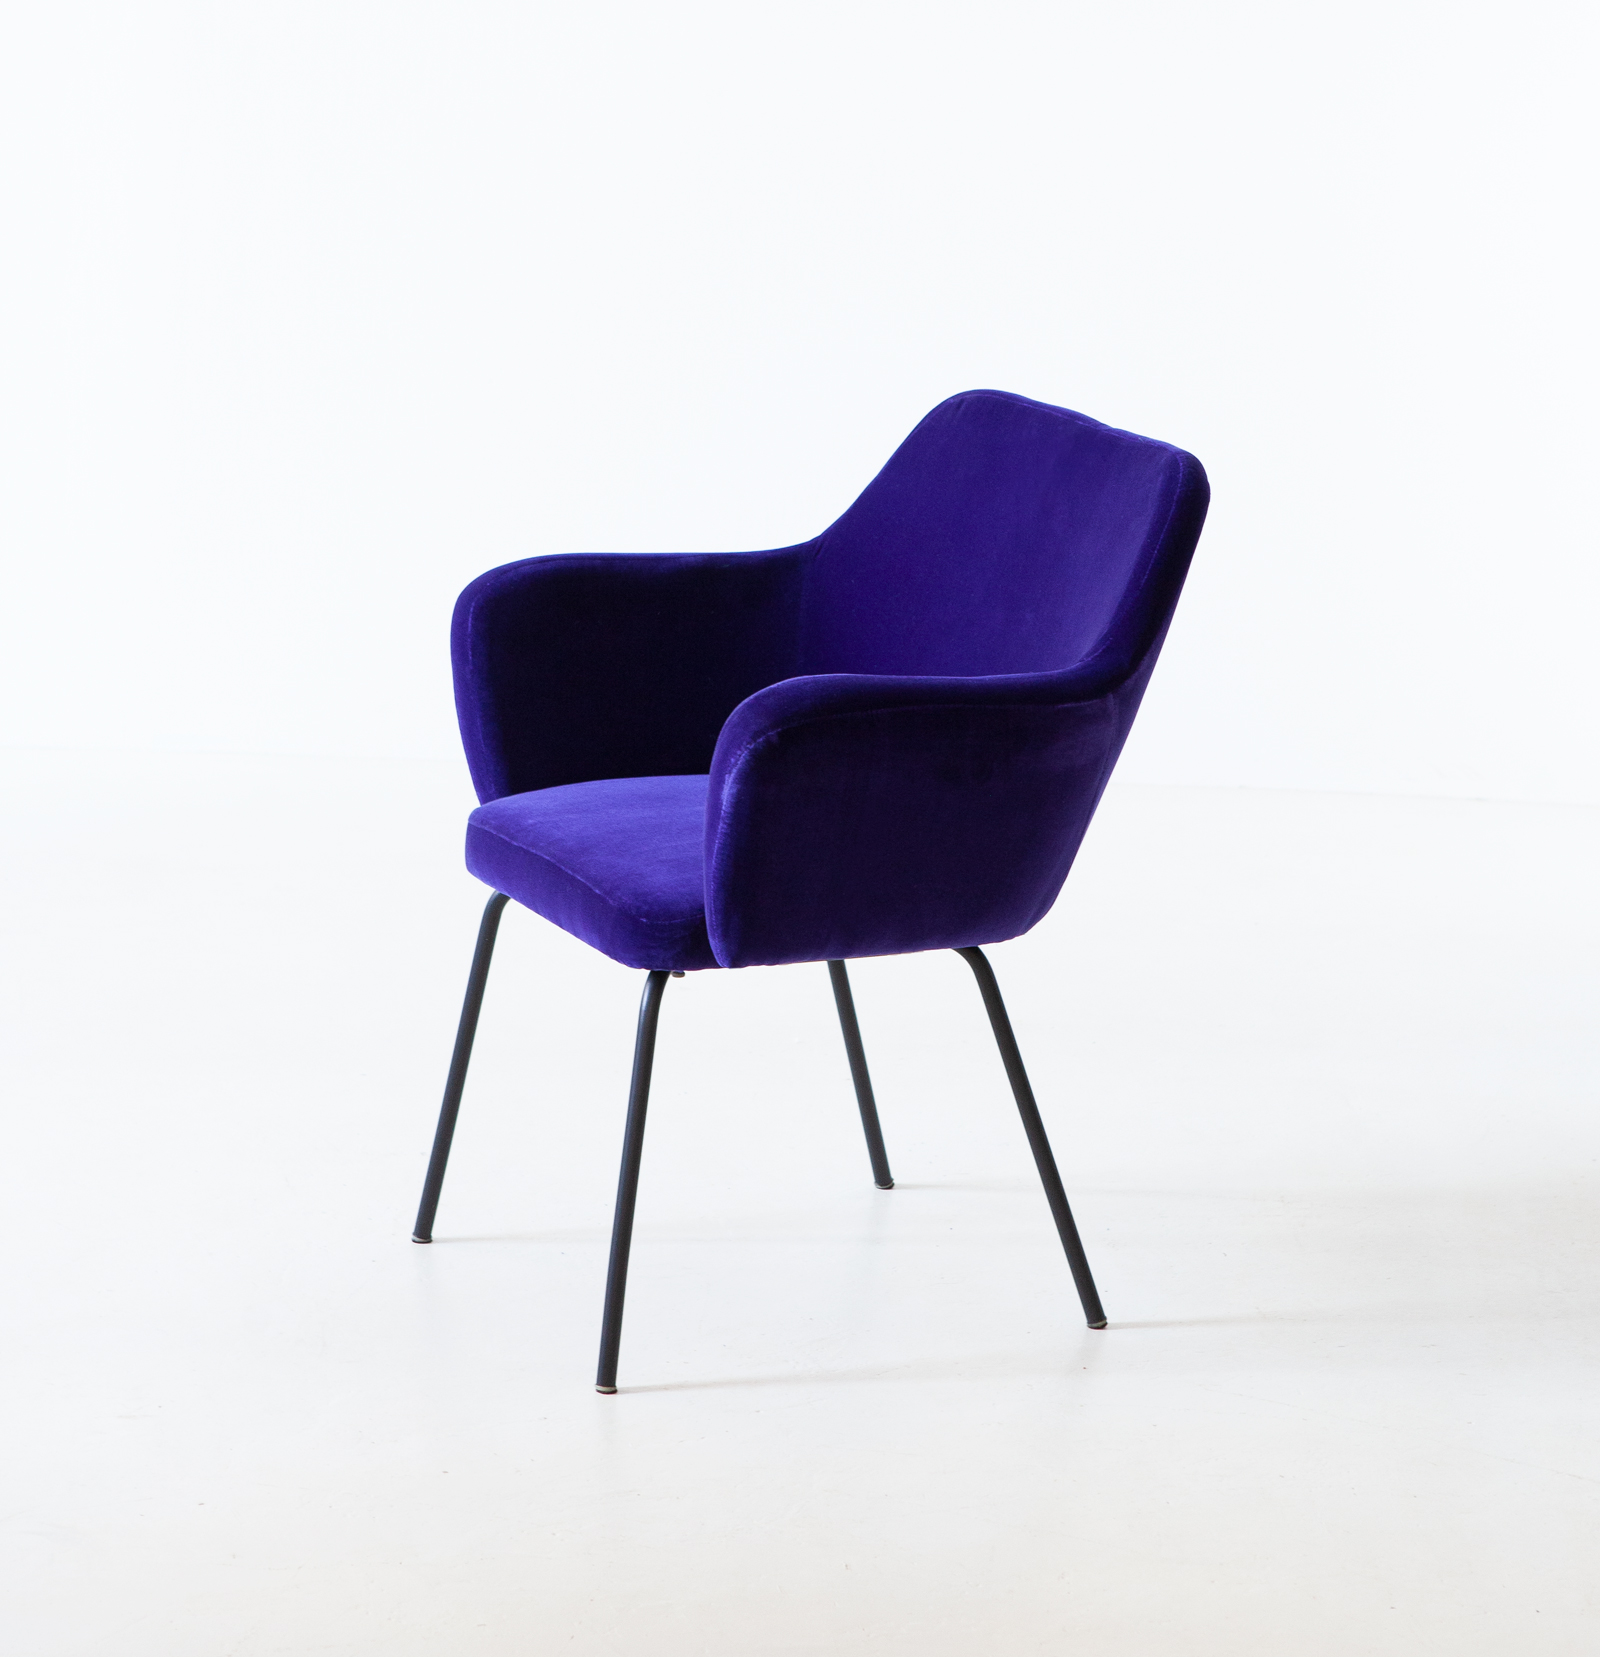 1950s-purle-velvet-armchair-by-studio-pfr-for--arflex-6-se318